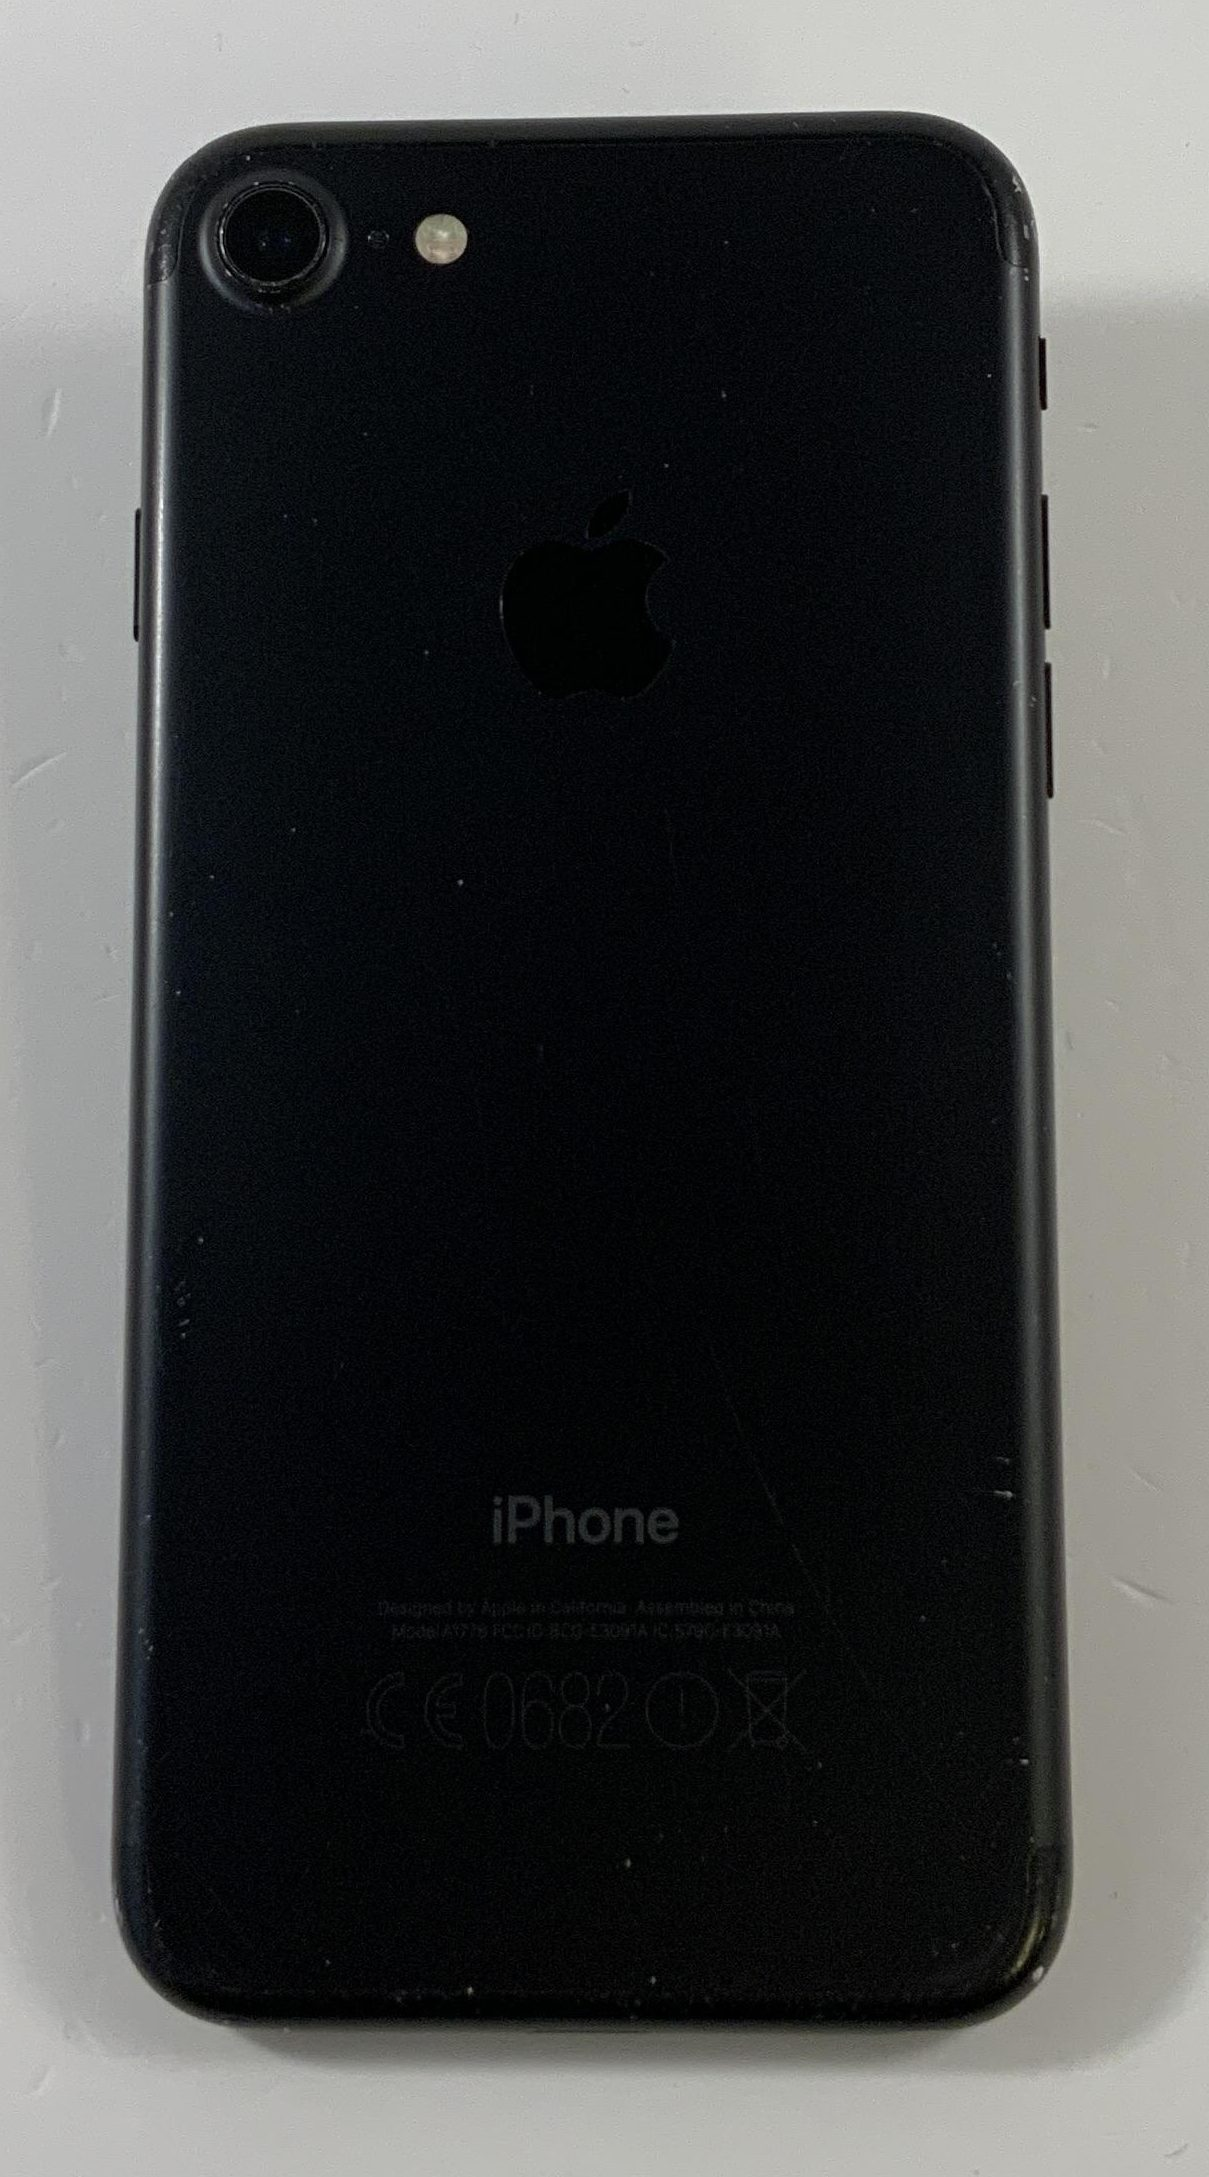 iPhone 7 32GB, 32GB, Black, immagine 2